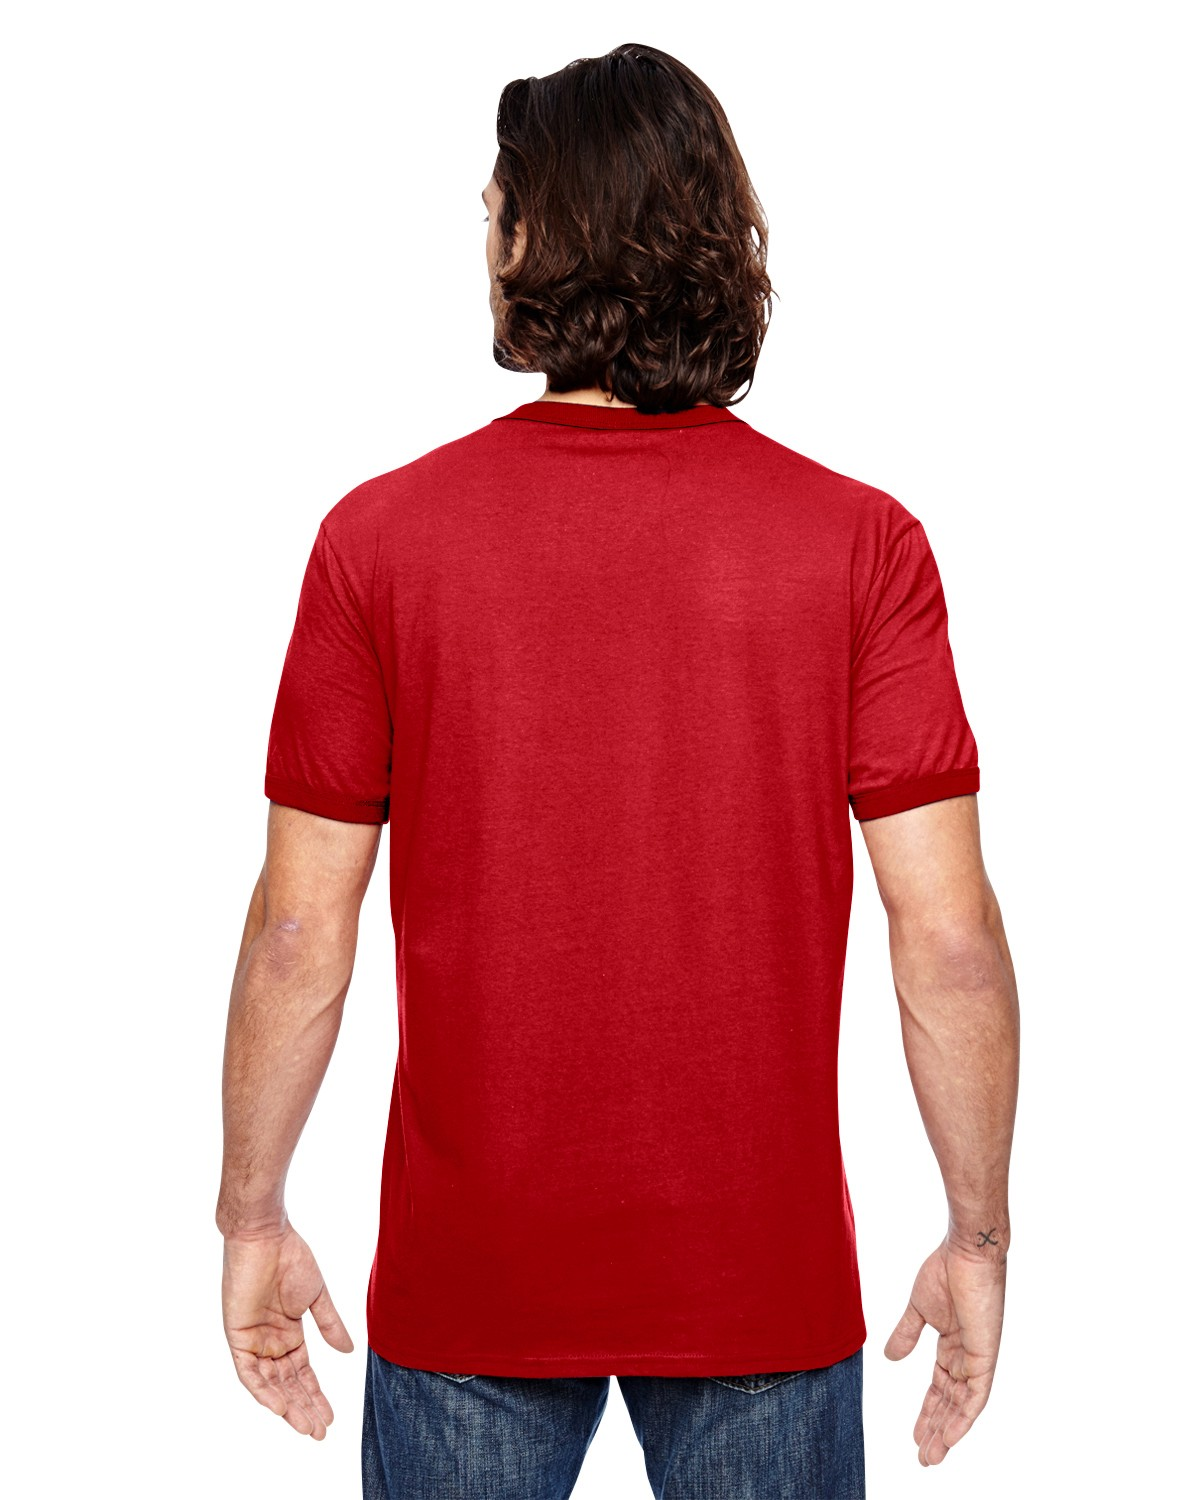 988AN Anvil HEATHER RED/RED